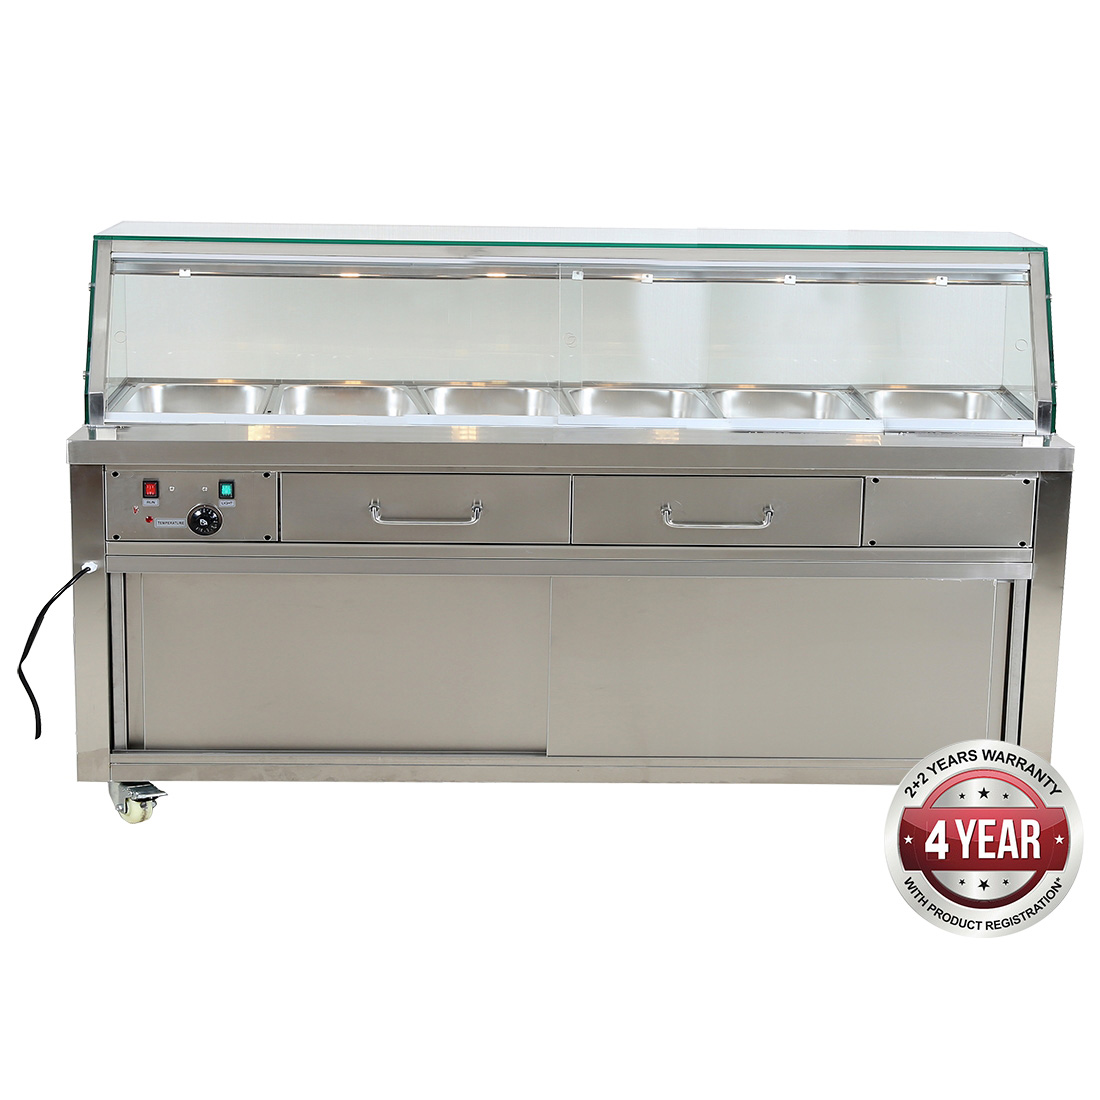 Heated Bain Marie Food Display - PG210FE-YG